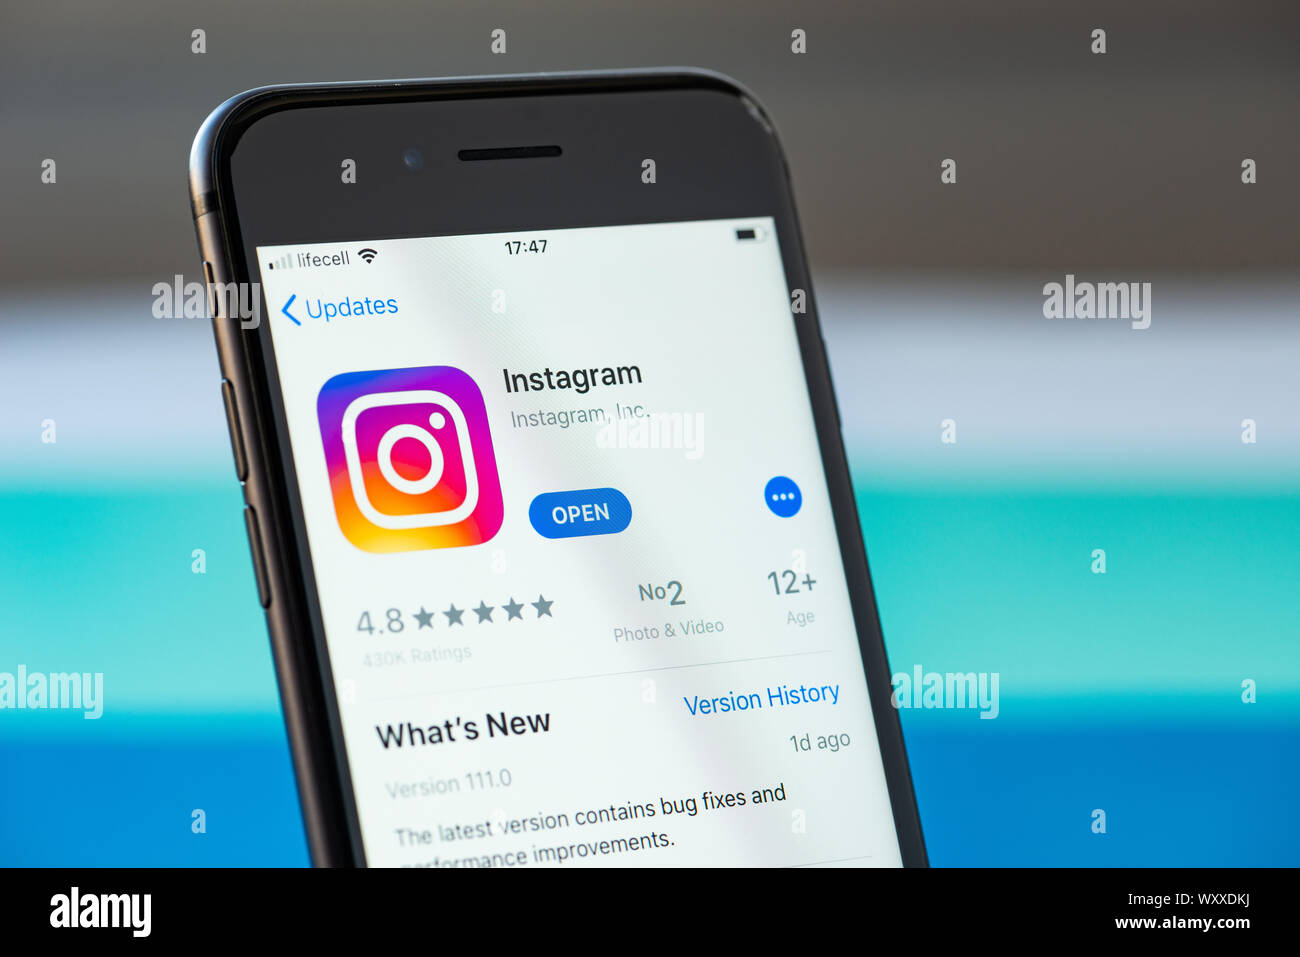 Kiev, Ukraine - le 17 septembre 2019 : Apple iPhone 8 smartphone avec l'application mobile Instagram sur l'écran Banque D'Images